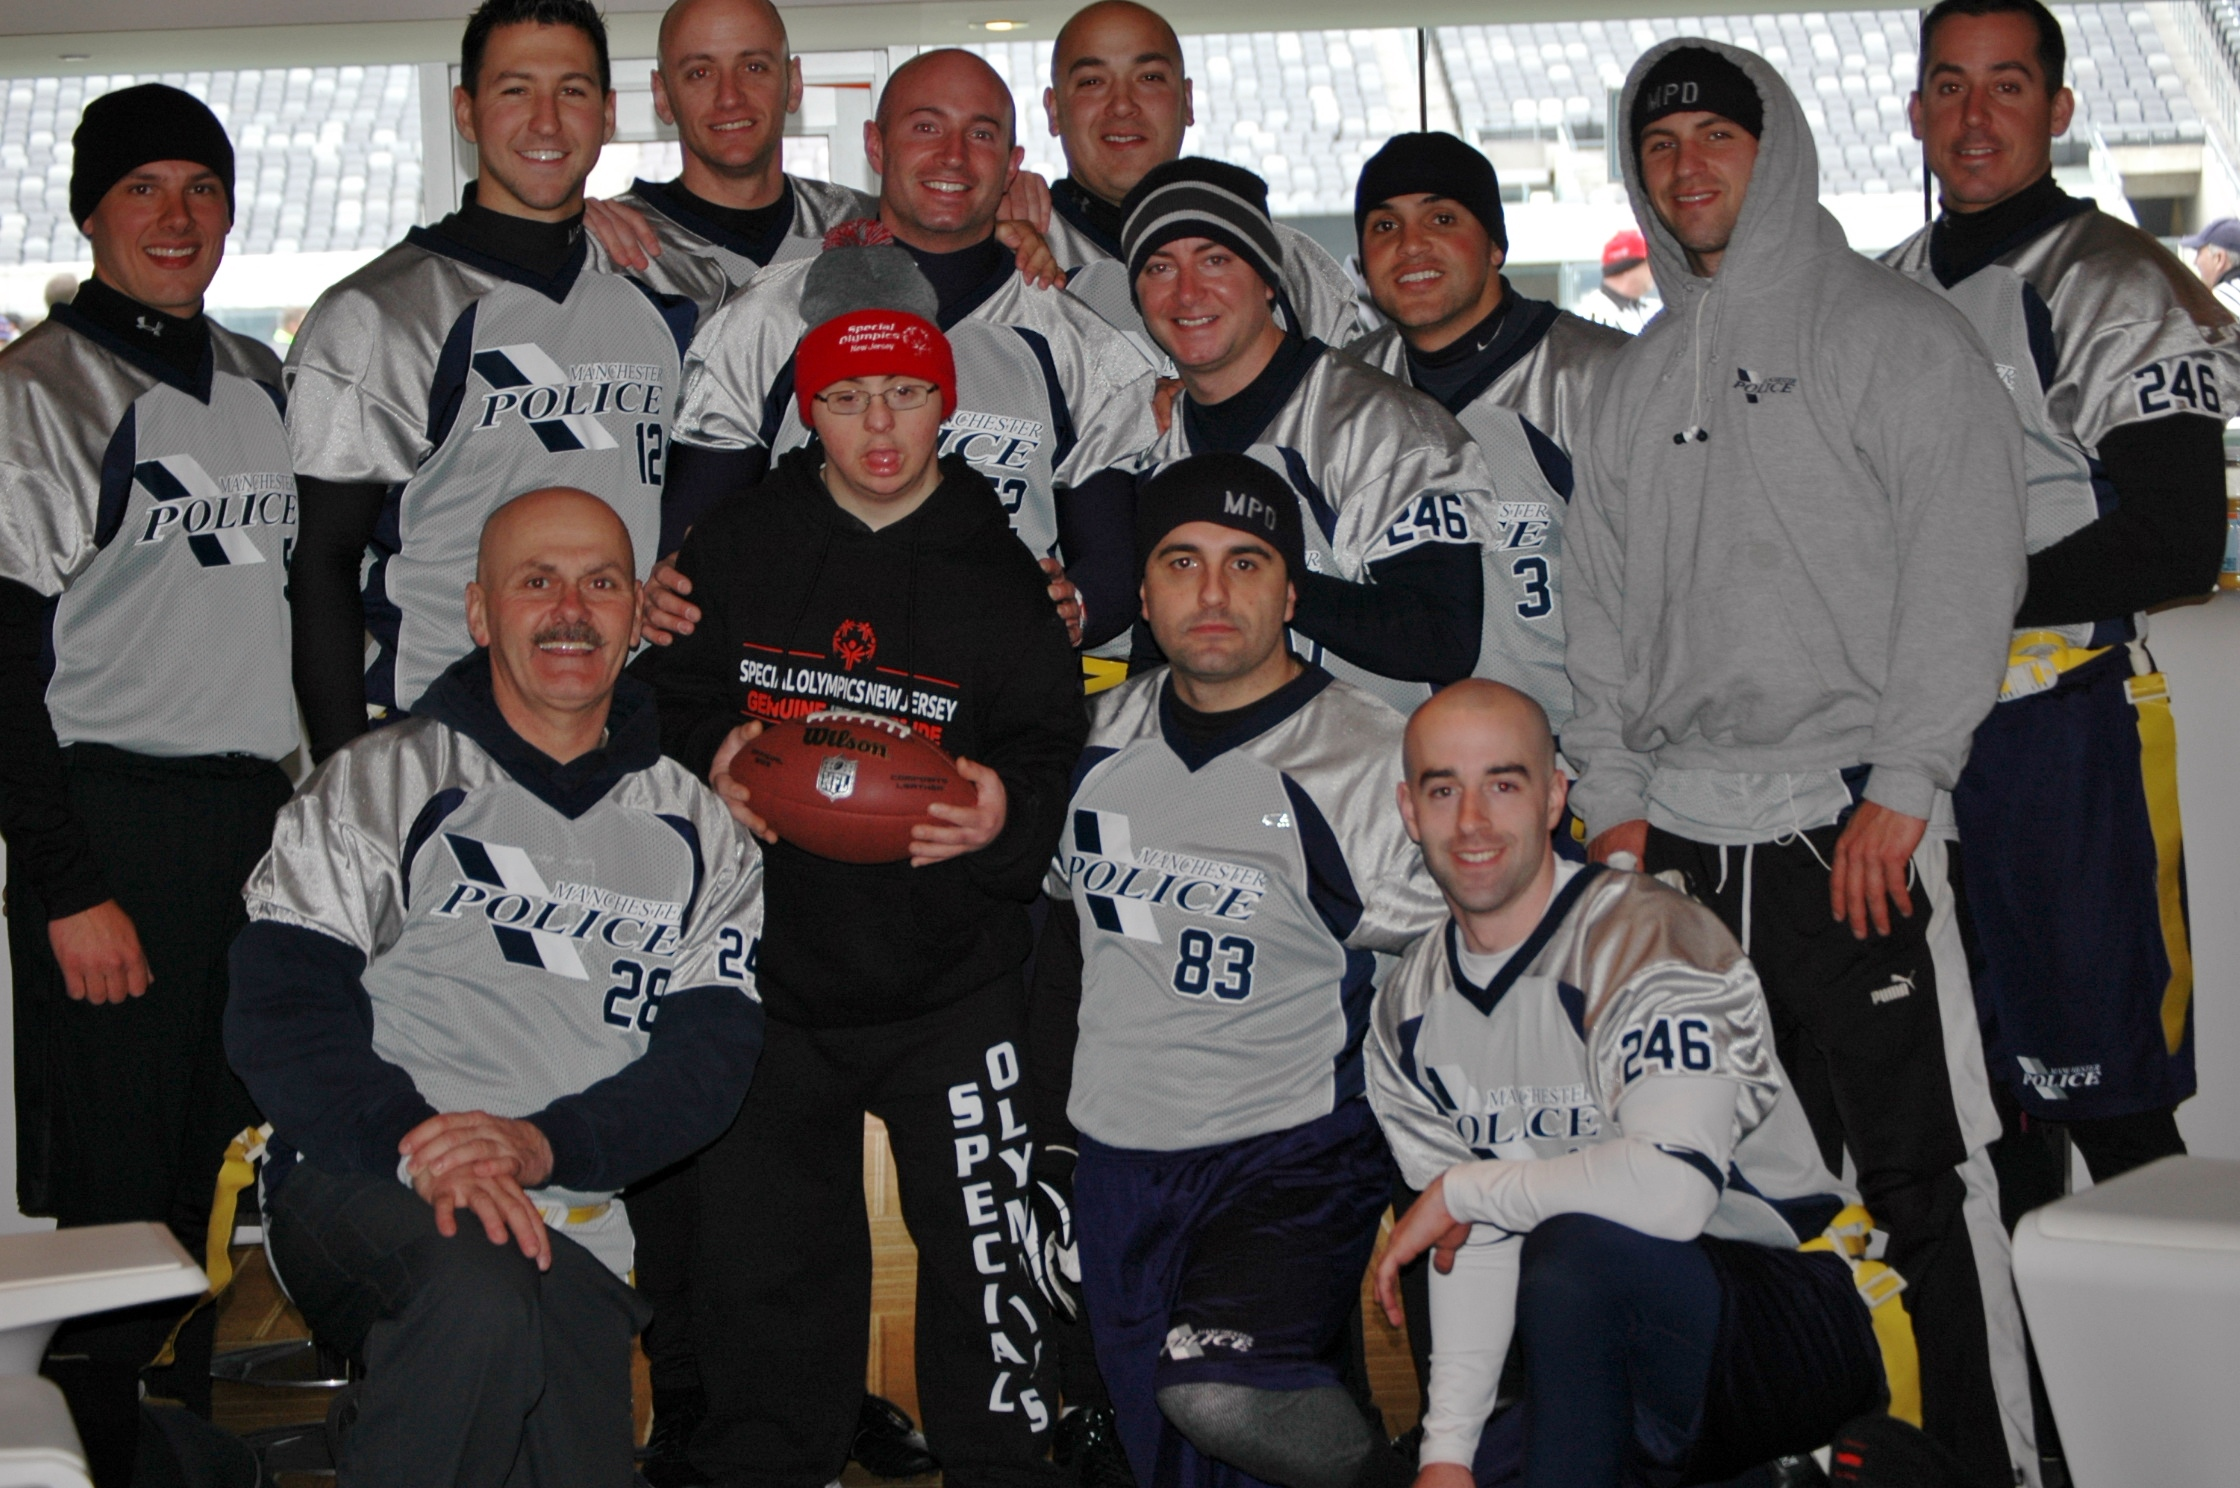 Community Event 4 Snow Bowl-Special Olympics of NJ fundraiser